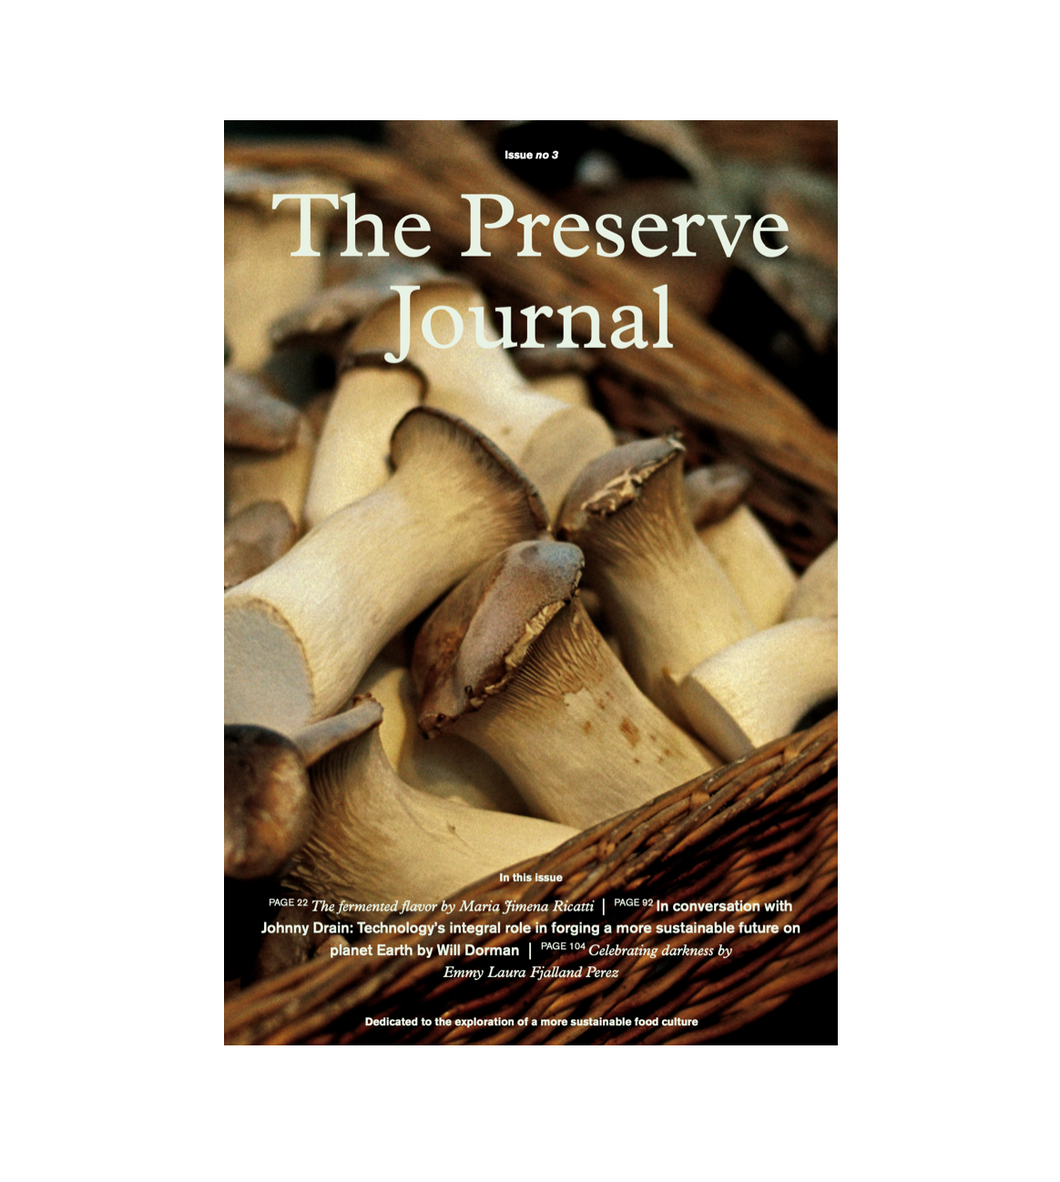 The Preserve Journal Issue no. 3